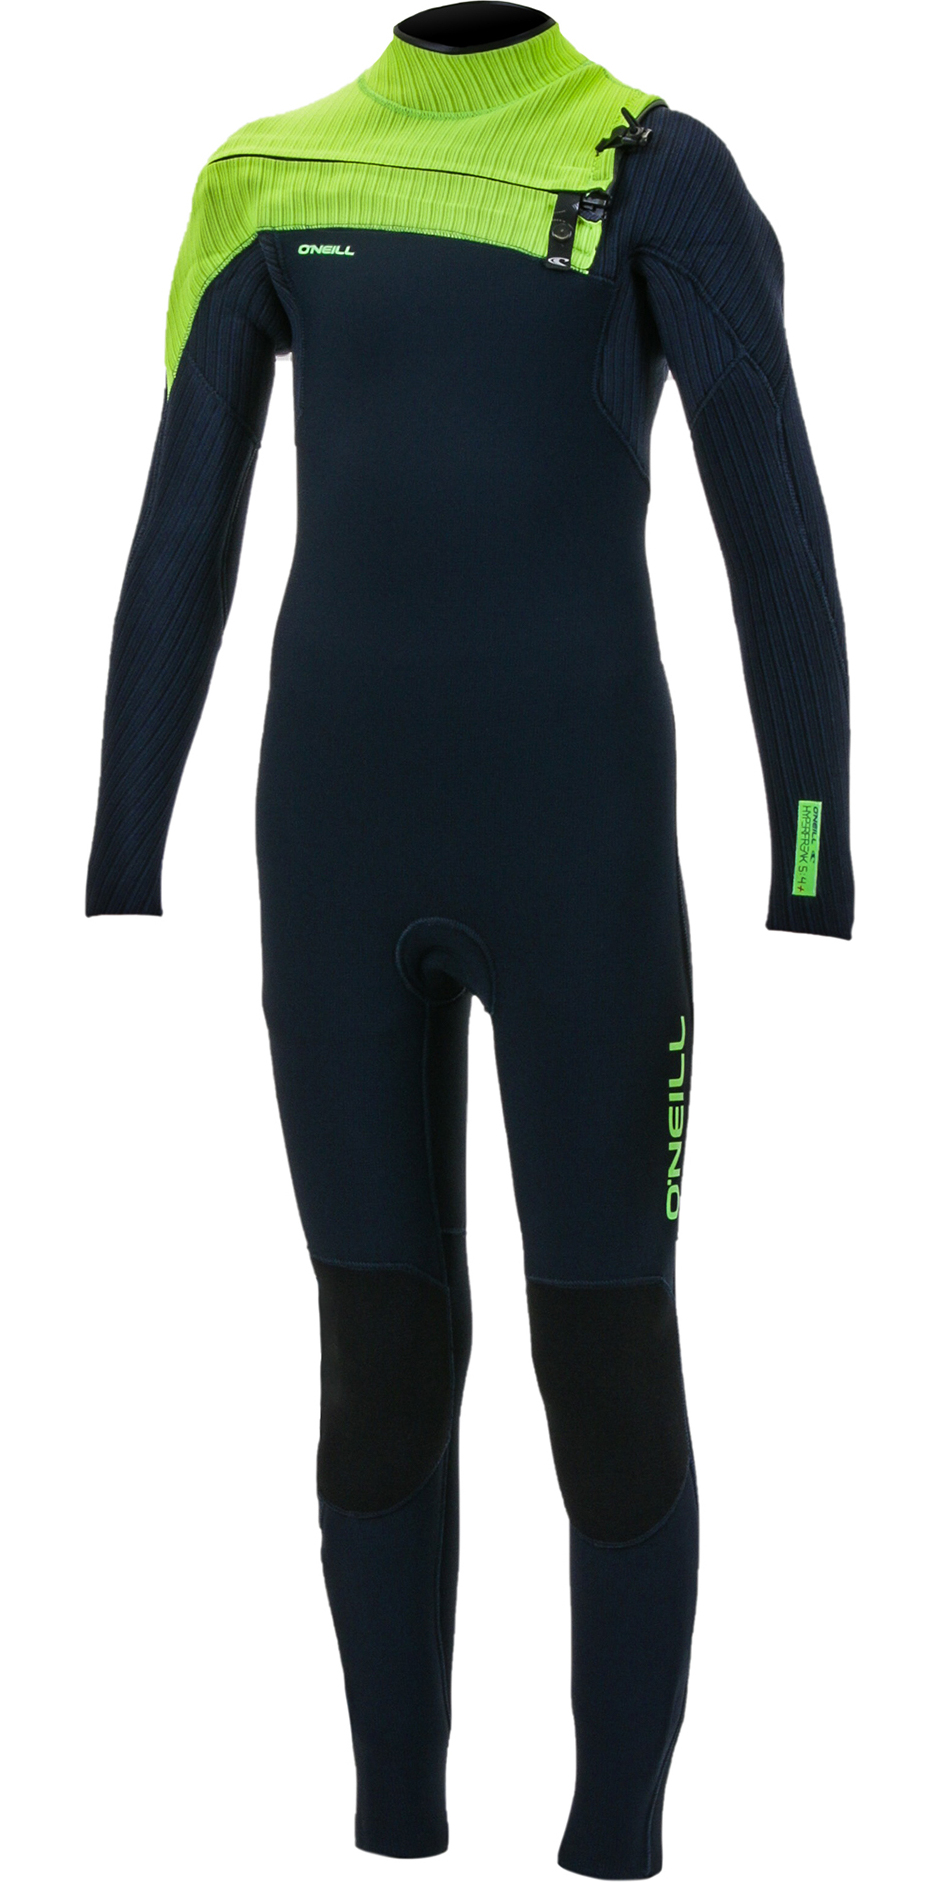 2019 O'Neill Youth Hyperfreak+ 5/4mm Chest Zip GBS Wetsuit Abyss / Dayglo 5381